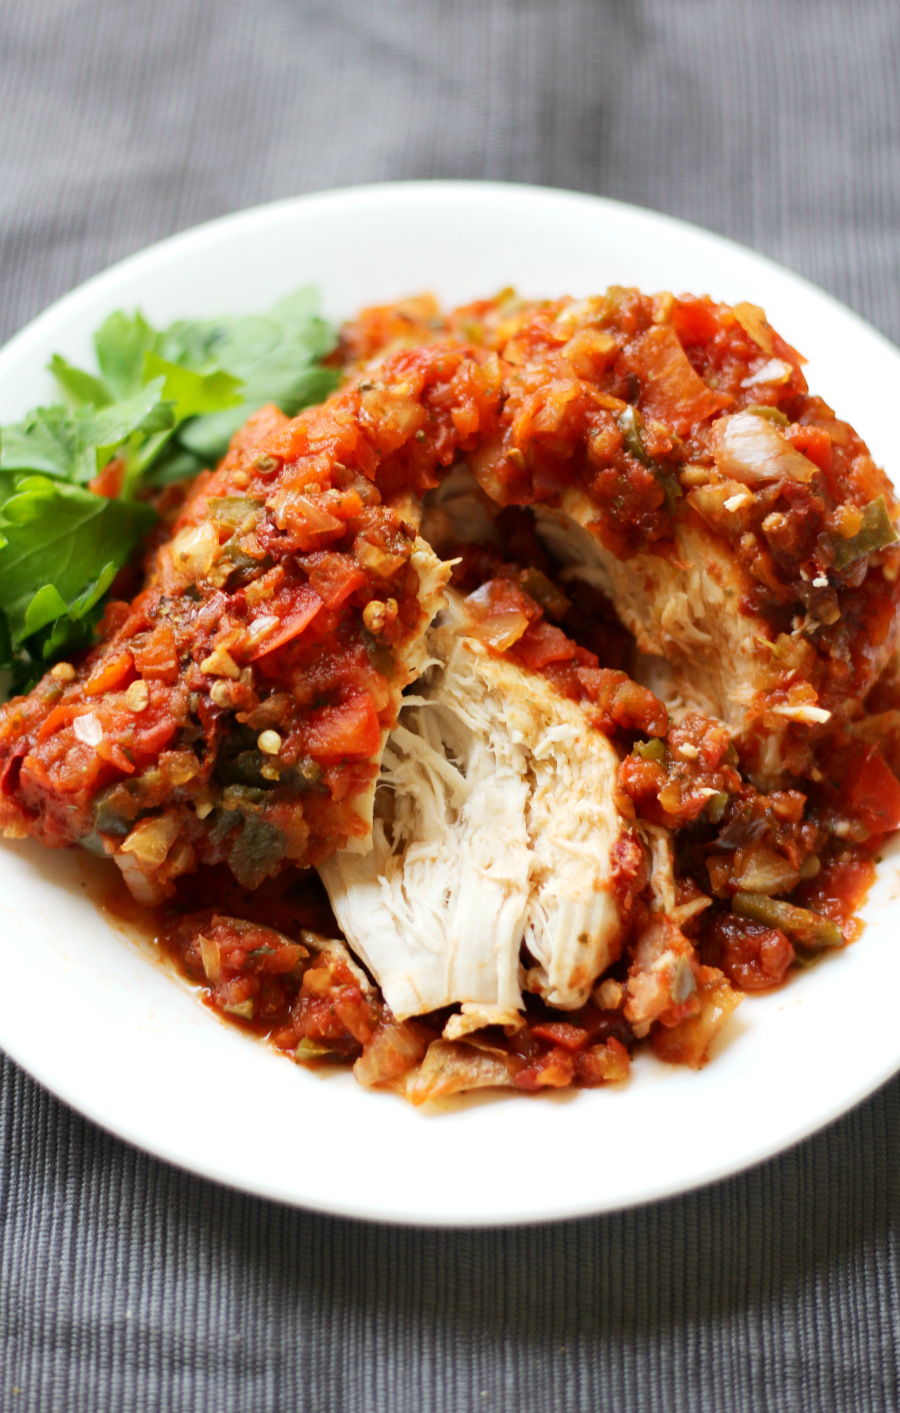 Slow Cooker Chicken Sofrito (Gluten-Free, Paleo) | Strength and Sunshine @RebeccaGF666 Time to wake up those taste buds! A super spicy and easy dinner recipe you can throw together in minutes! Slow Cooker Chicken Sofrito made right in your crockpot, gluten-free, paleo, and allergy-free! This flavor-packed healthy recipe gives you a dose veggies from the homemade salsa!